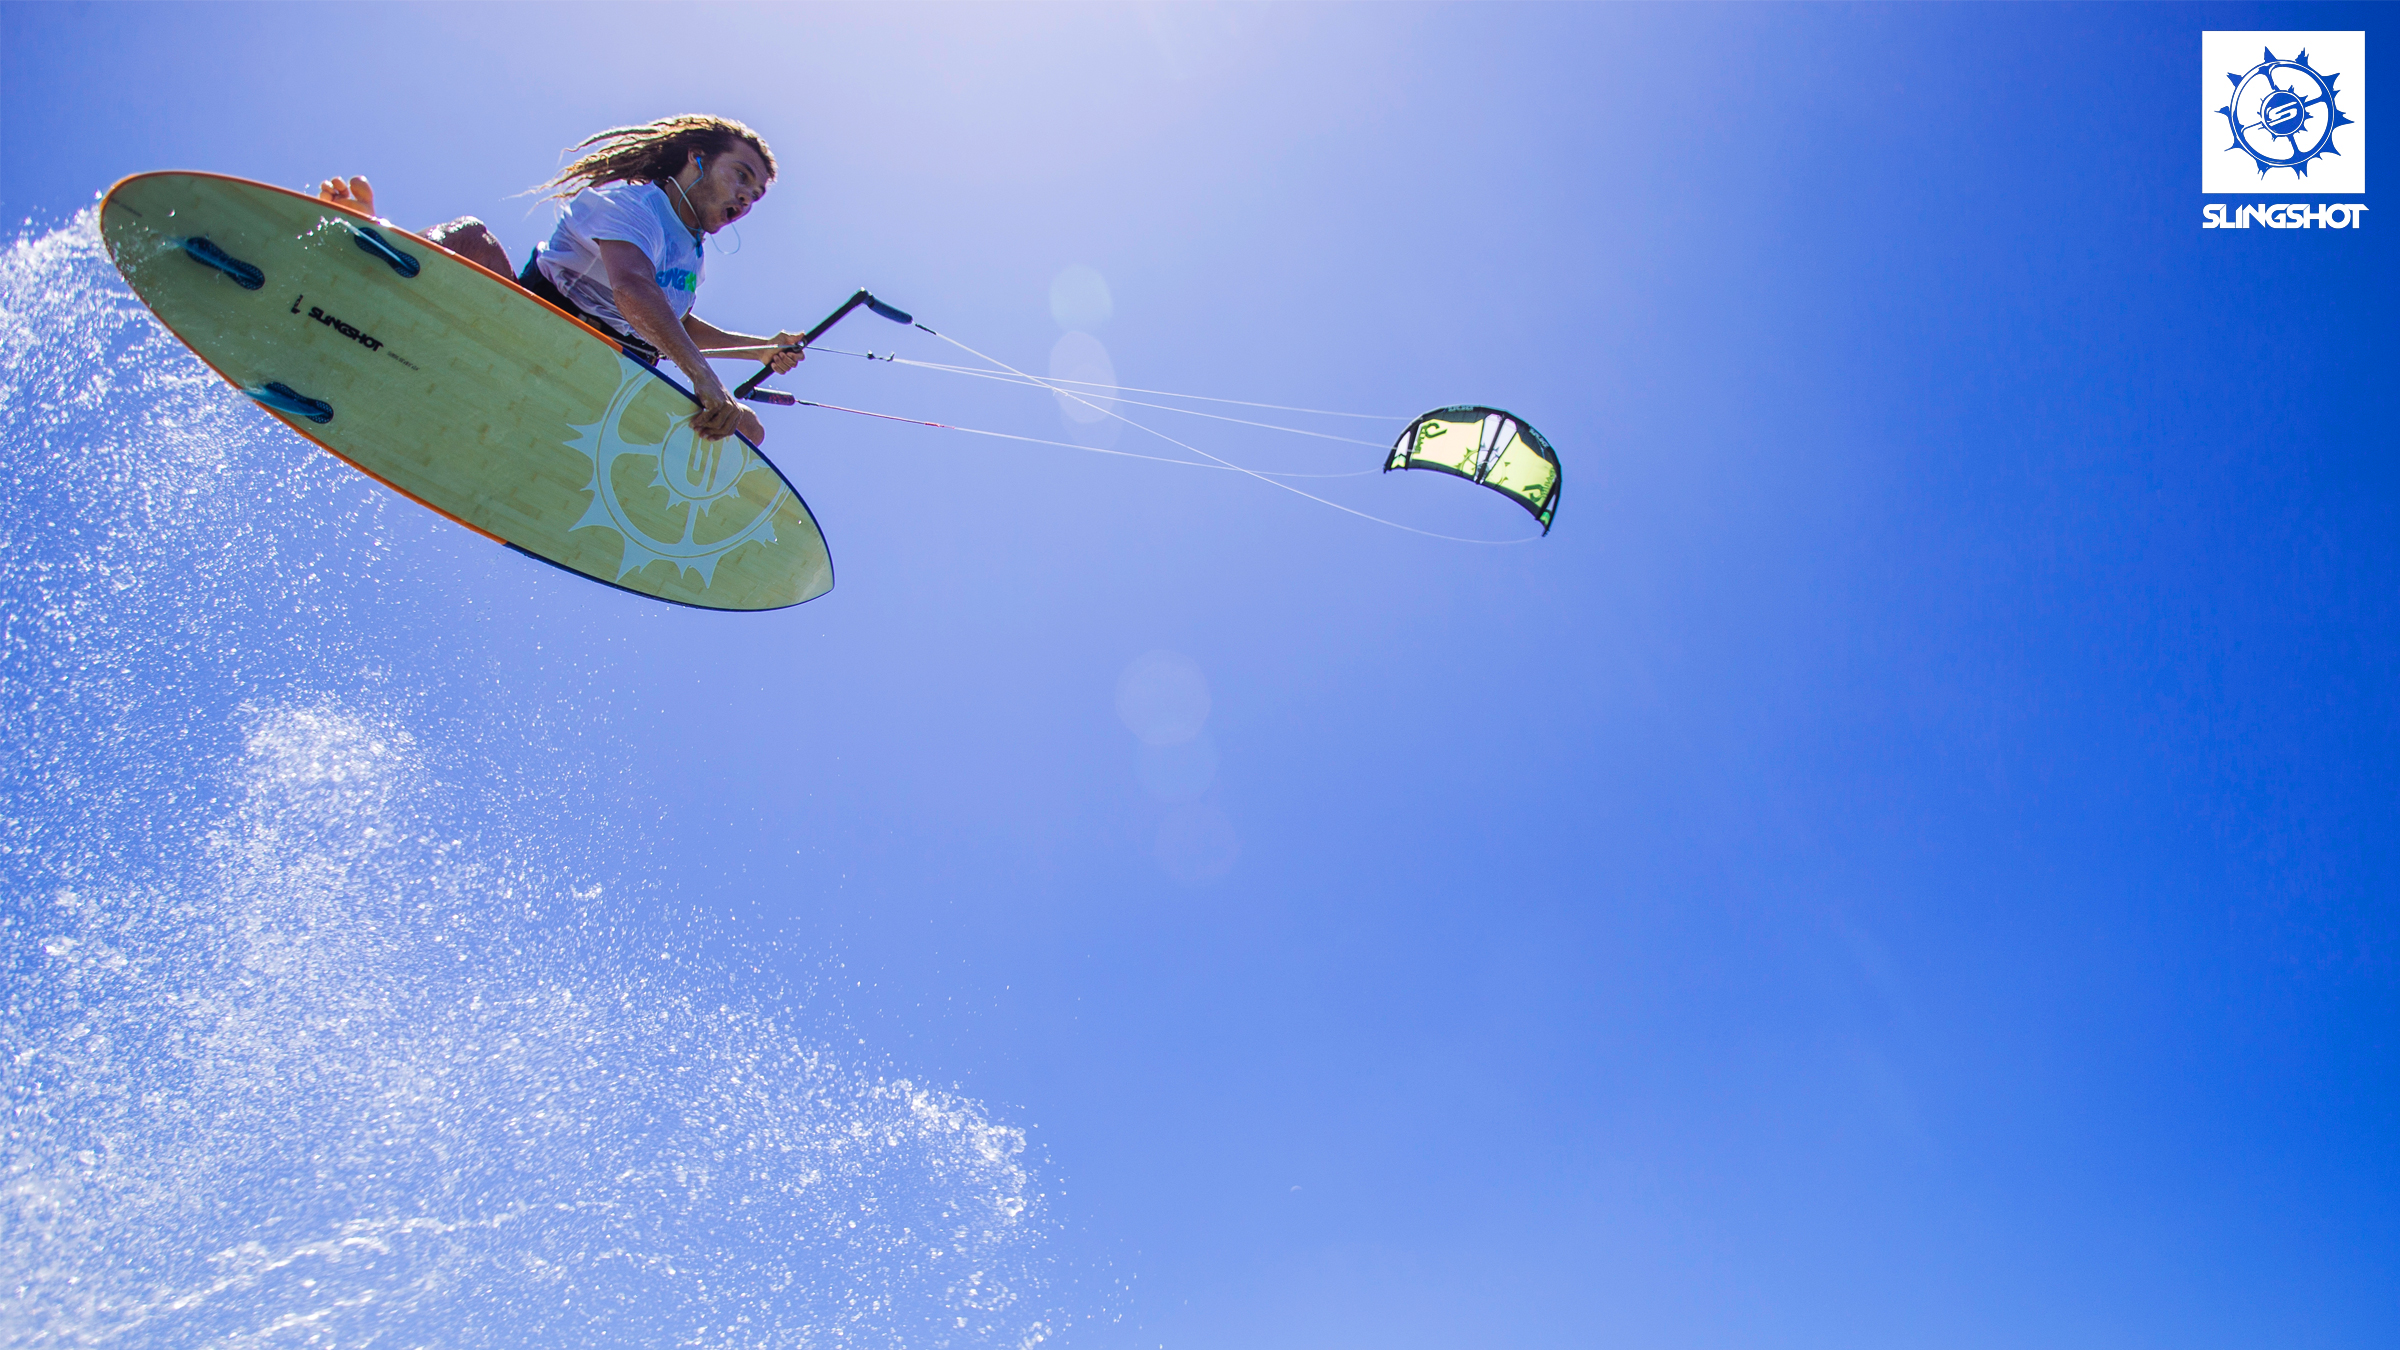 kitesurf wallpaper image - Patrick Rebstock on the new 2015 Slingshot Rally kite and Celeritas board - in resolution: High Definition - HD 16:9 2400 X 1350